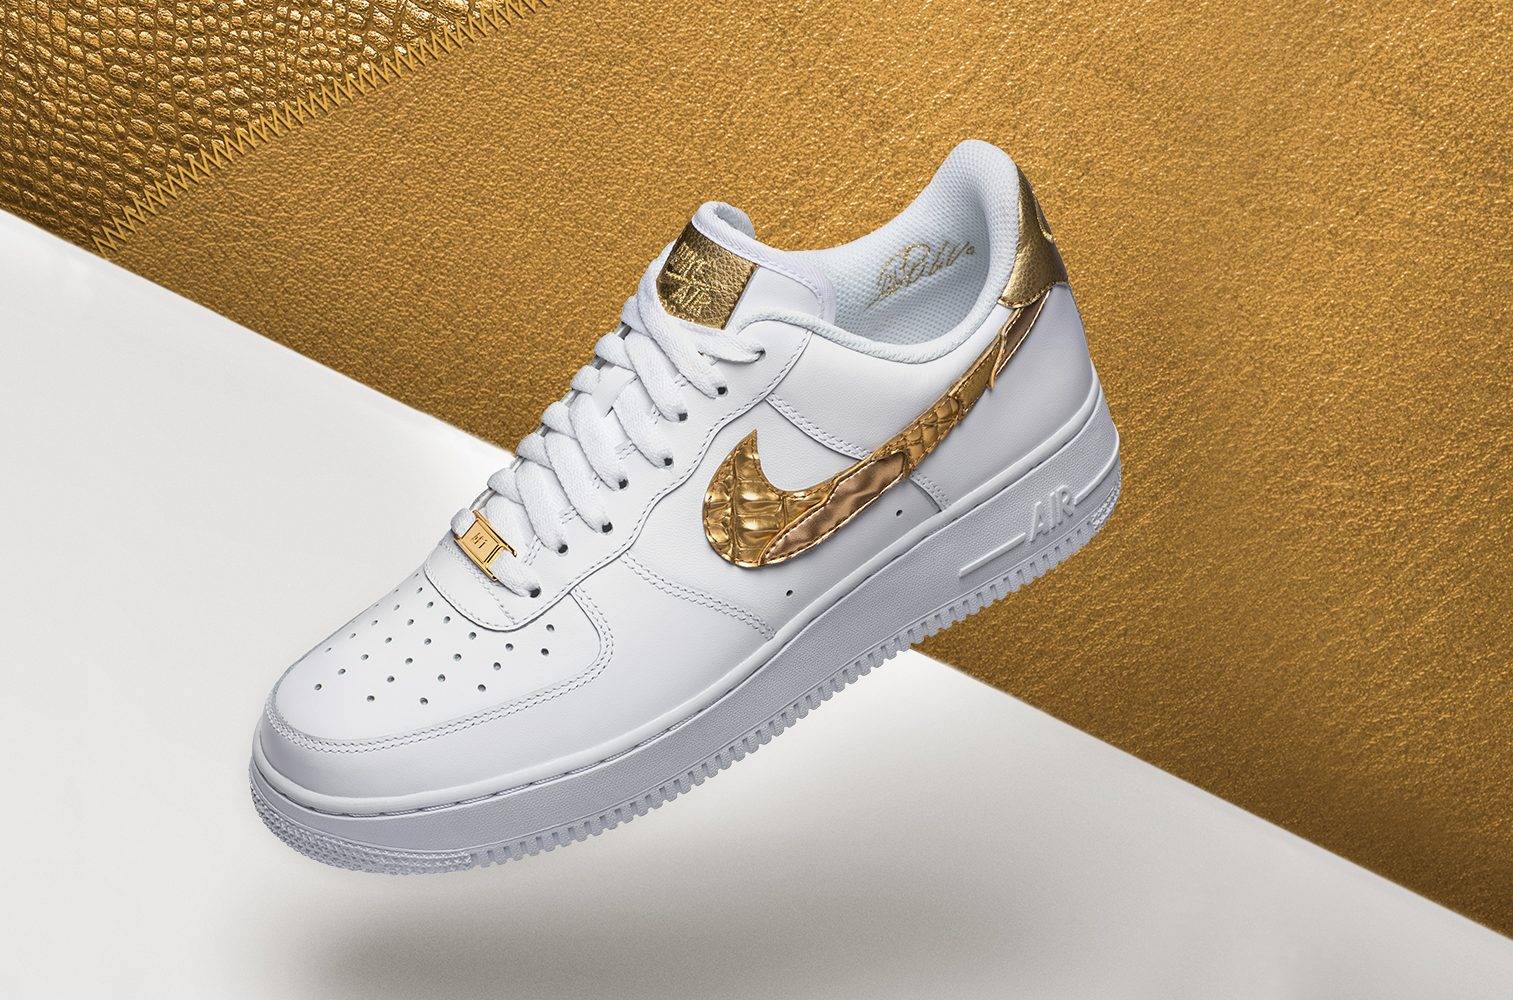 Nike Shoes Golden Swoosh